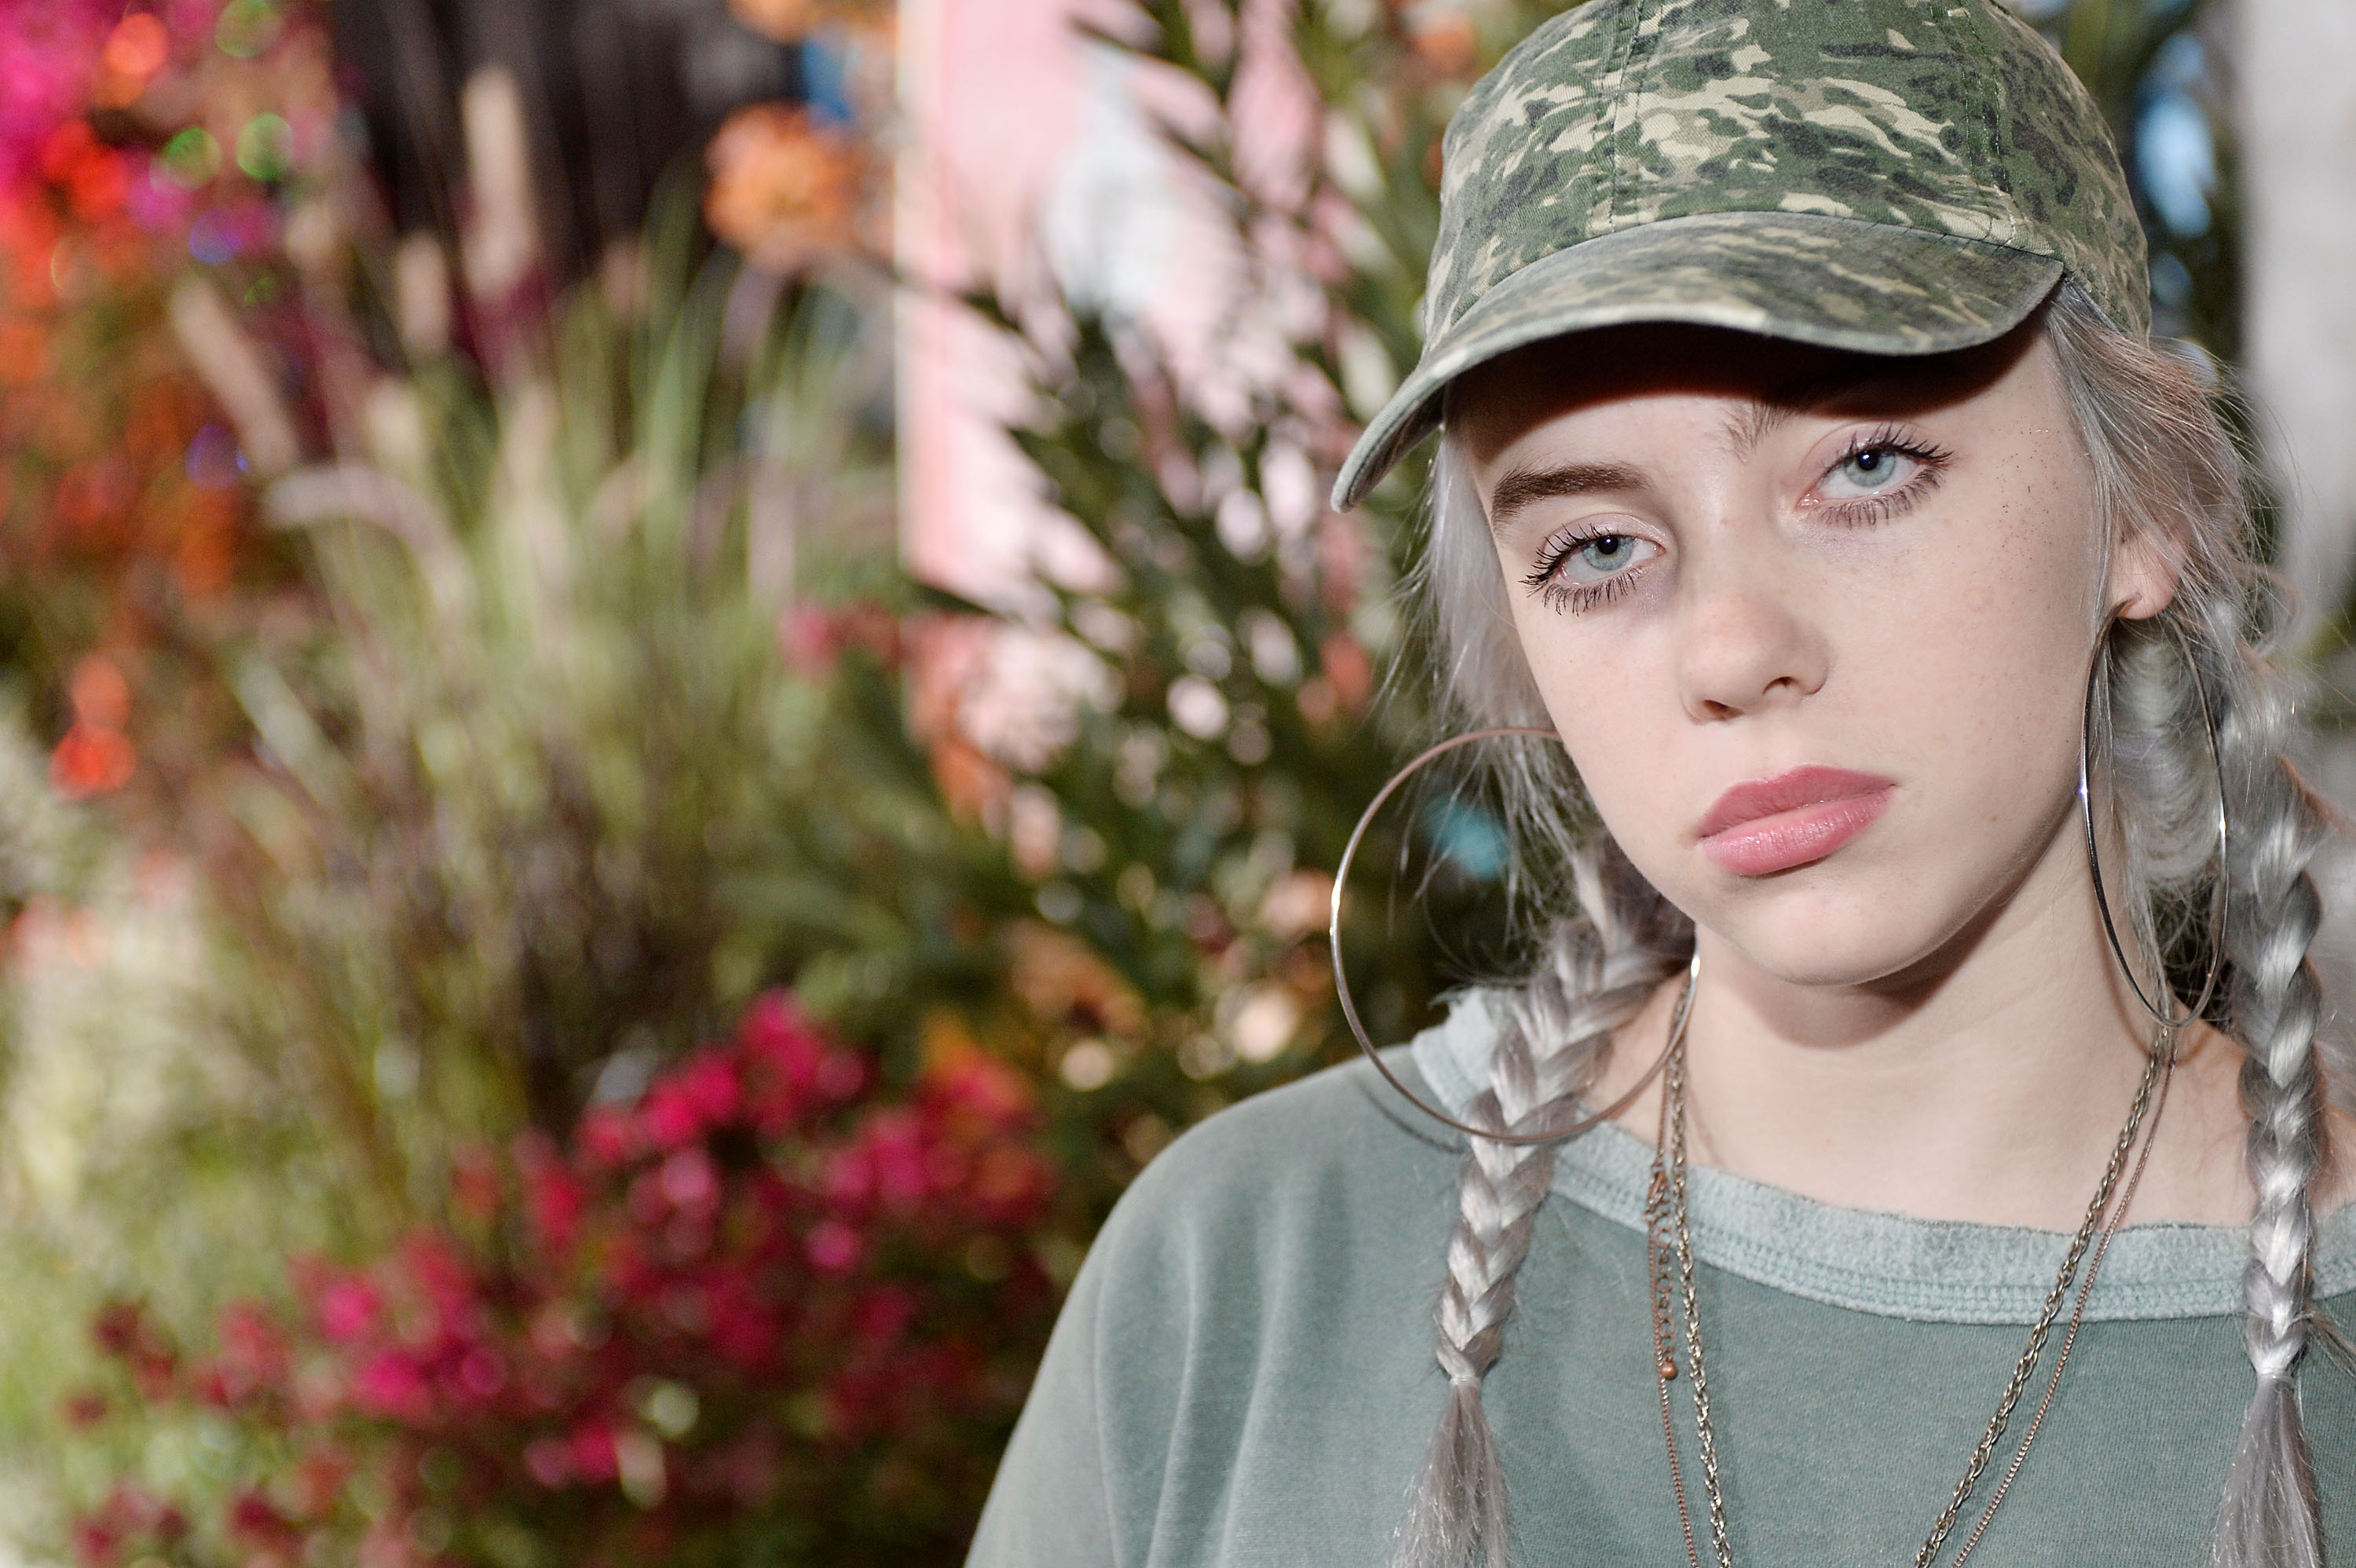 MALIBU, CA - SEPTEMBER 23:  Billie Eilish attends 14th Annual Teen Vogue Young Hollywood with American Eagle Outfitters on September 23, 2016 in Malibu, California.  (Photo by Stefanie Keenan/Getty Images for Teen Vogue)